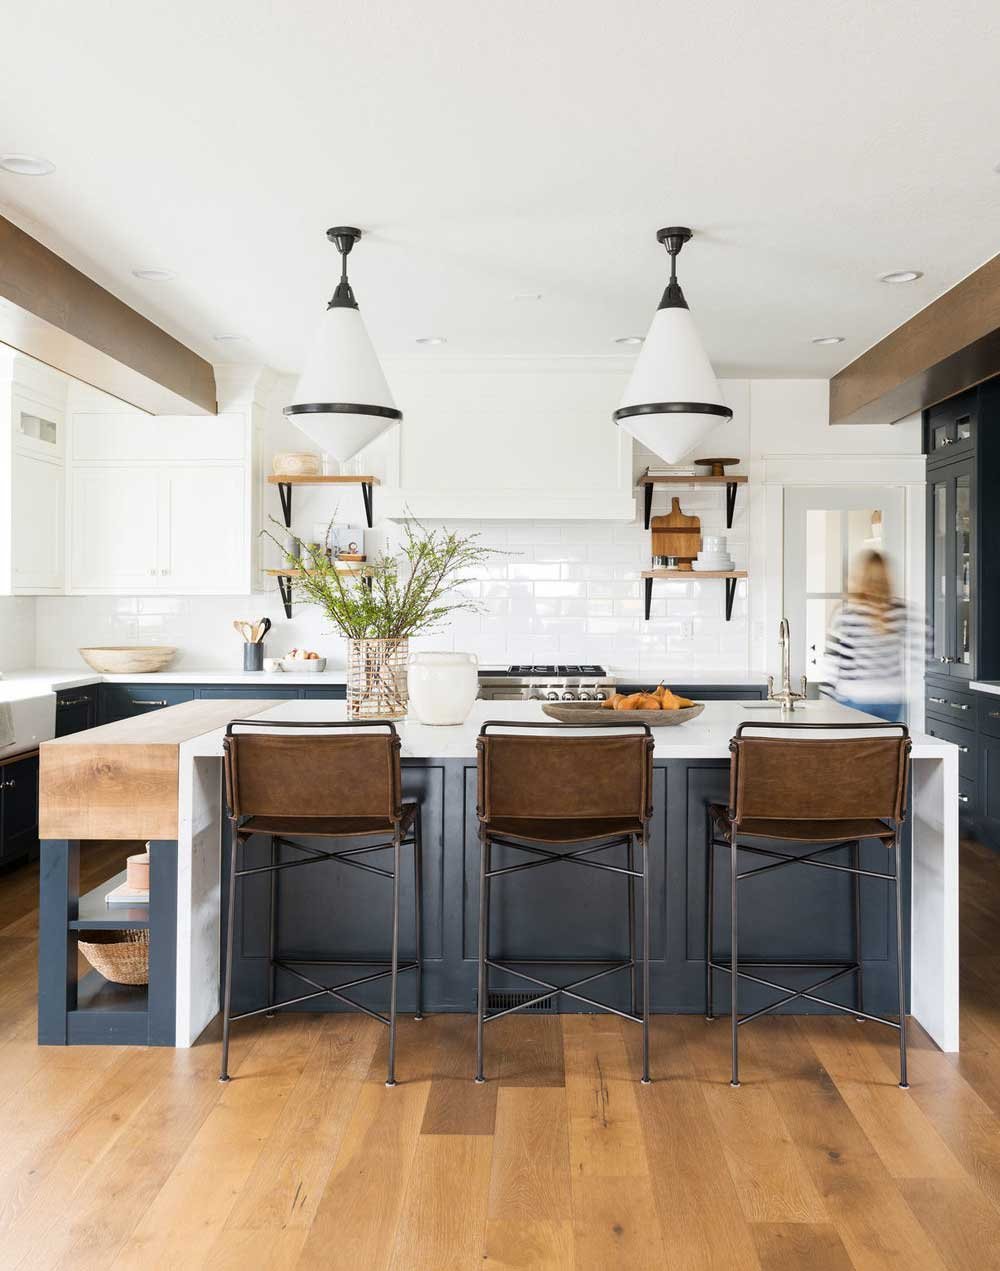 Cons Of Hardwood Flooring In A Kitchen, Pros And Cons Of Laminate Wood Flooring In Kitchen